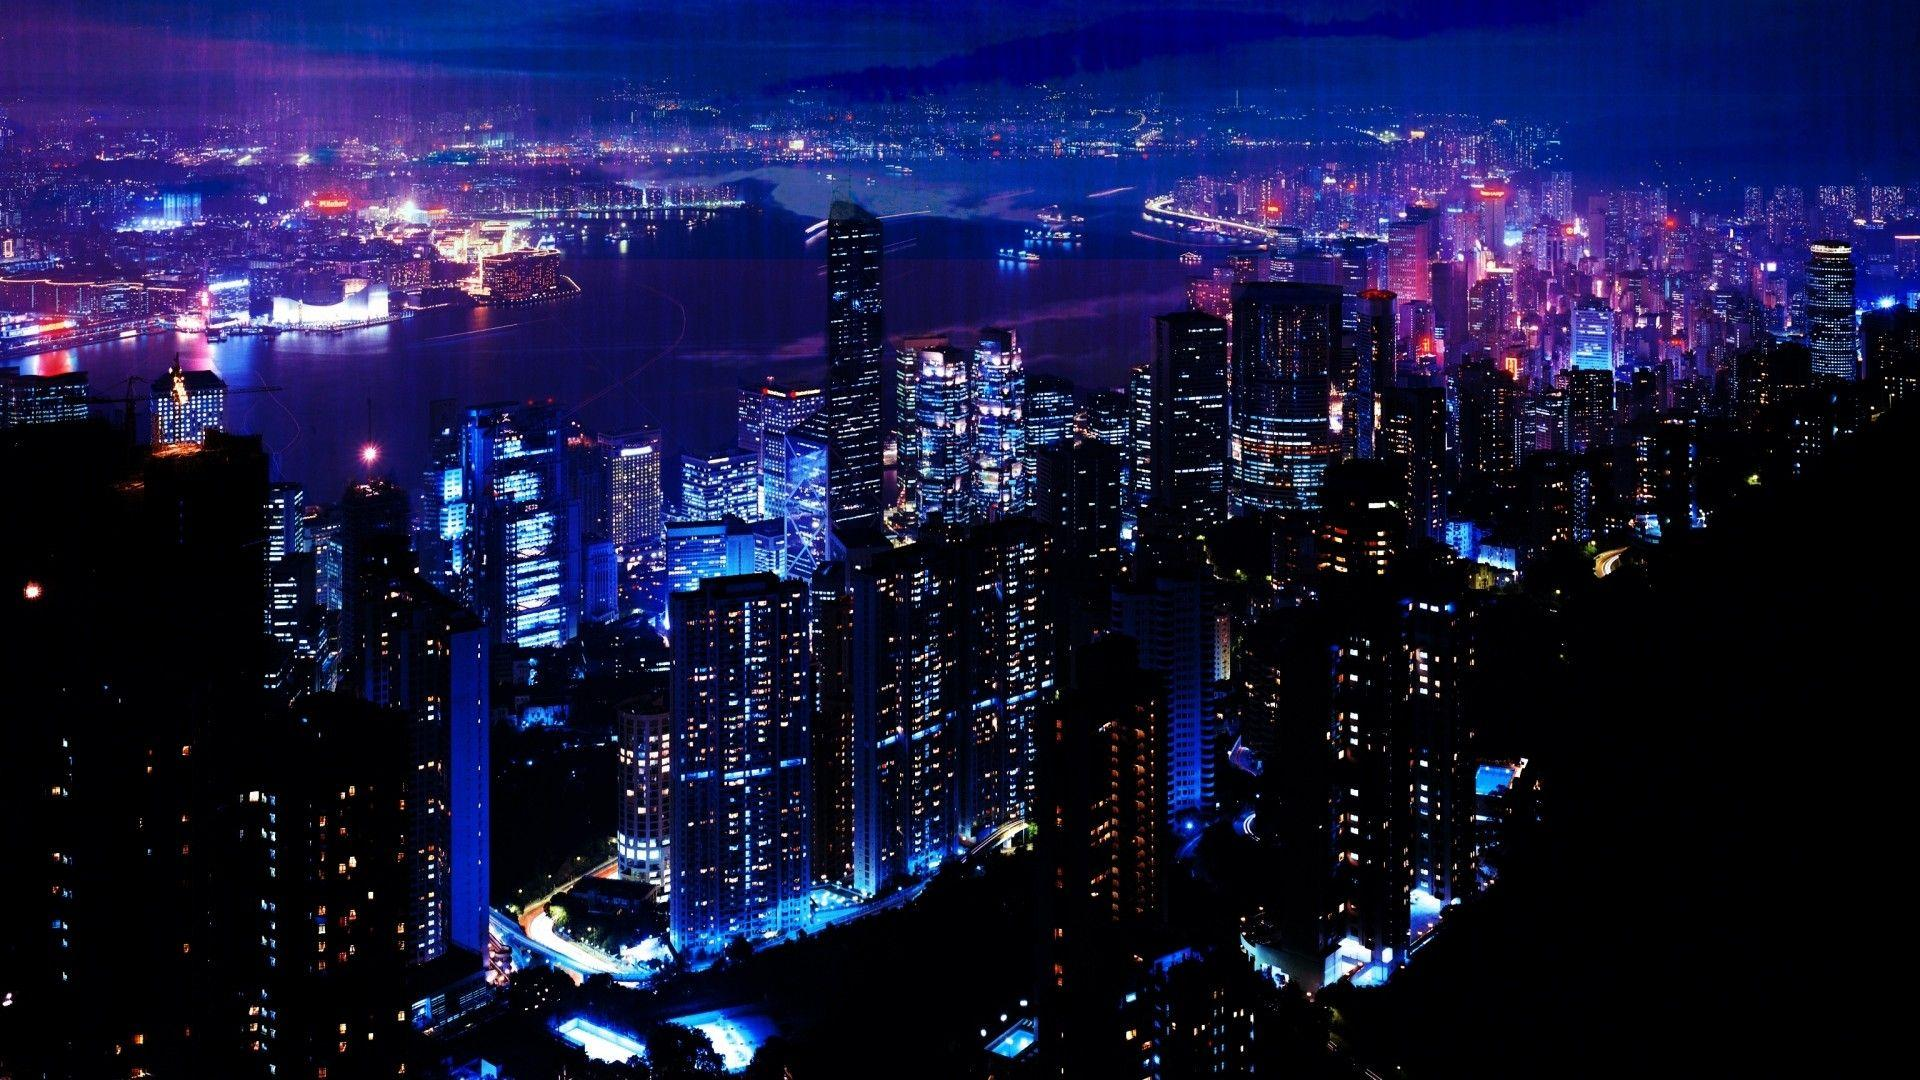 Night Time City Wallpaper 3 - Get HD Wallpapers Free